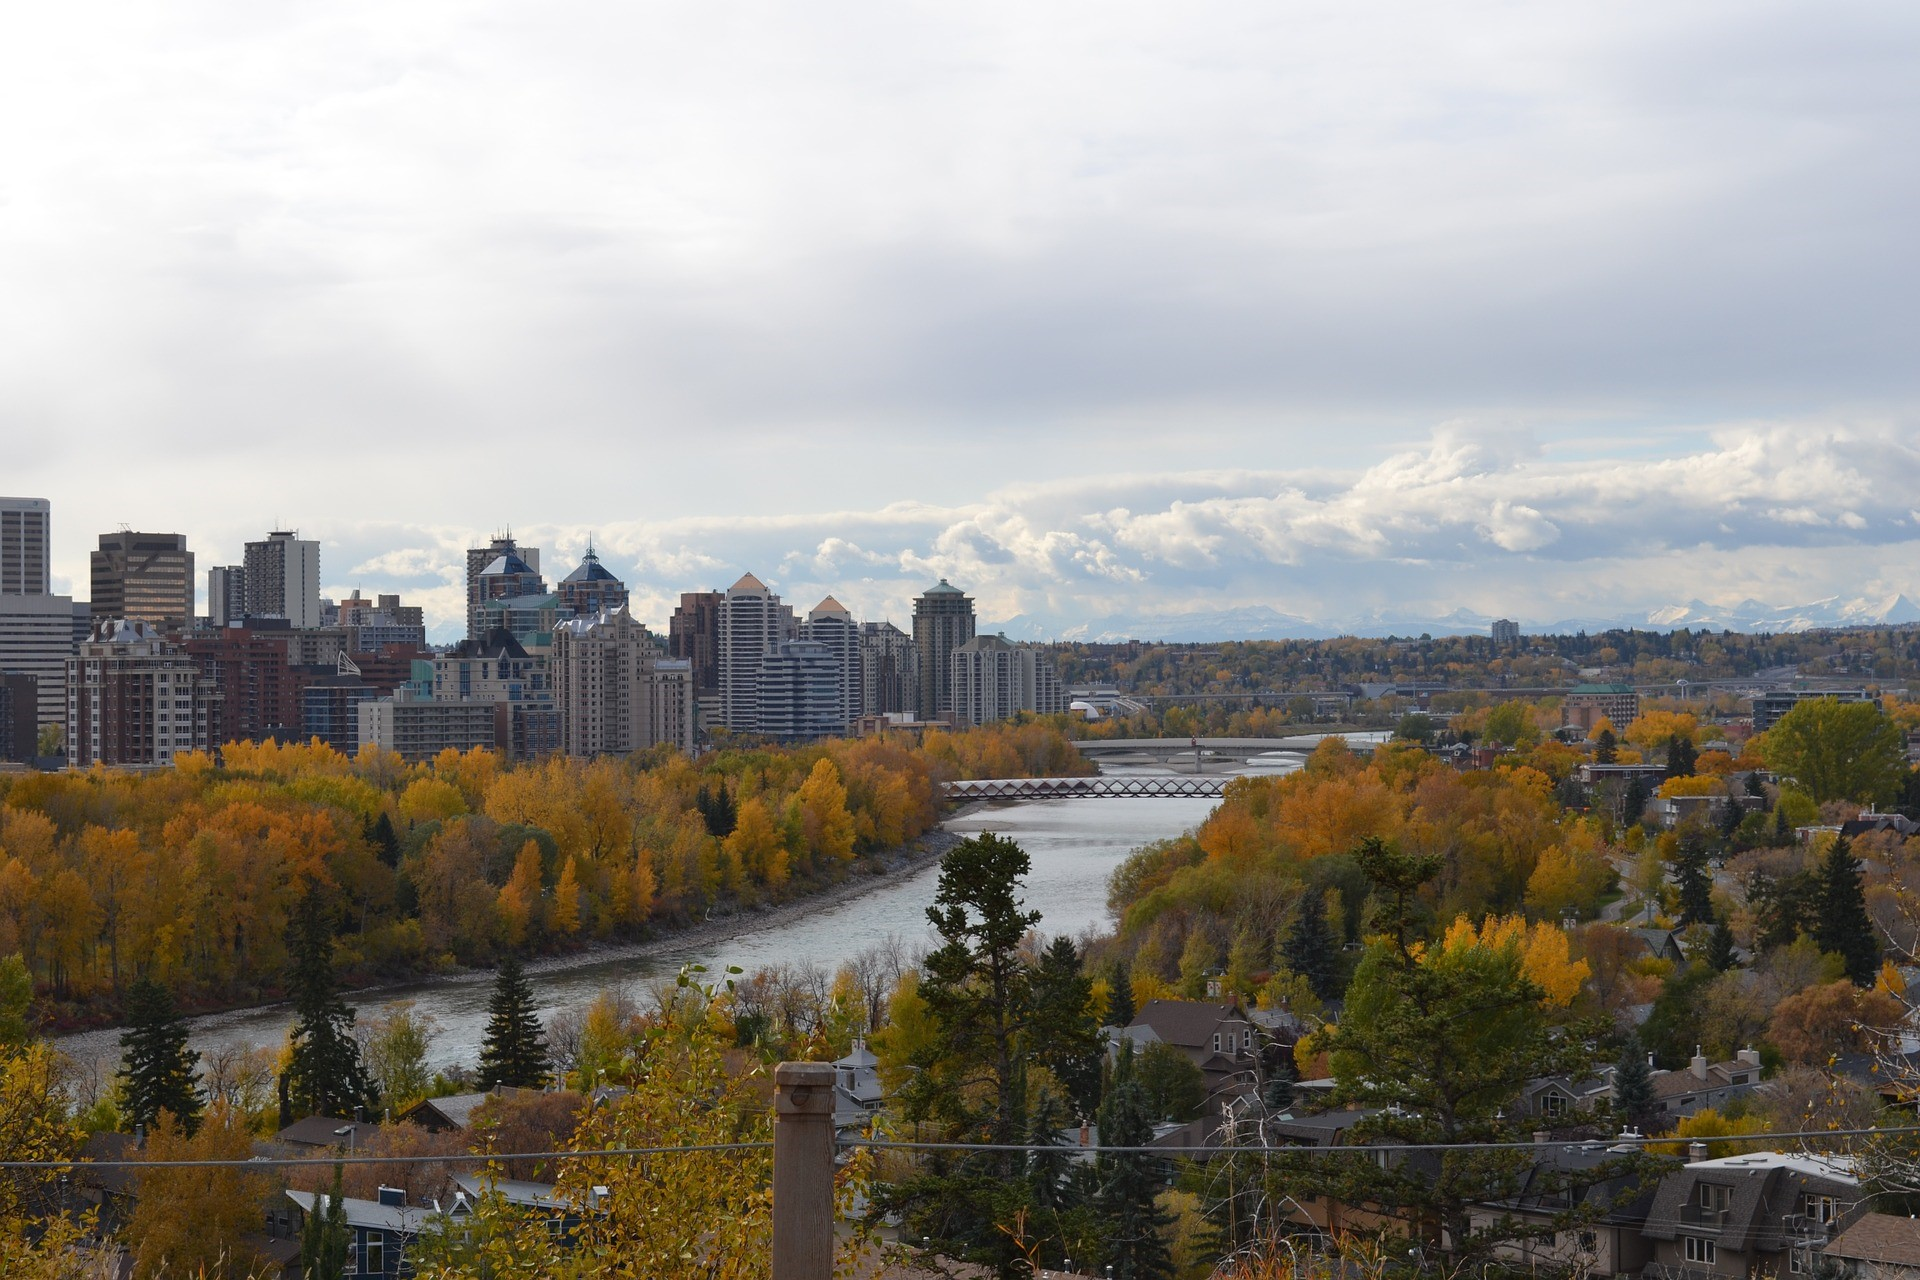 a view of the Calgary, Alberta skyline and Bow River with fall foliage